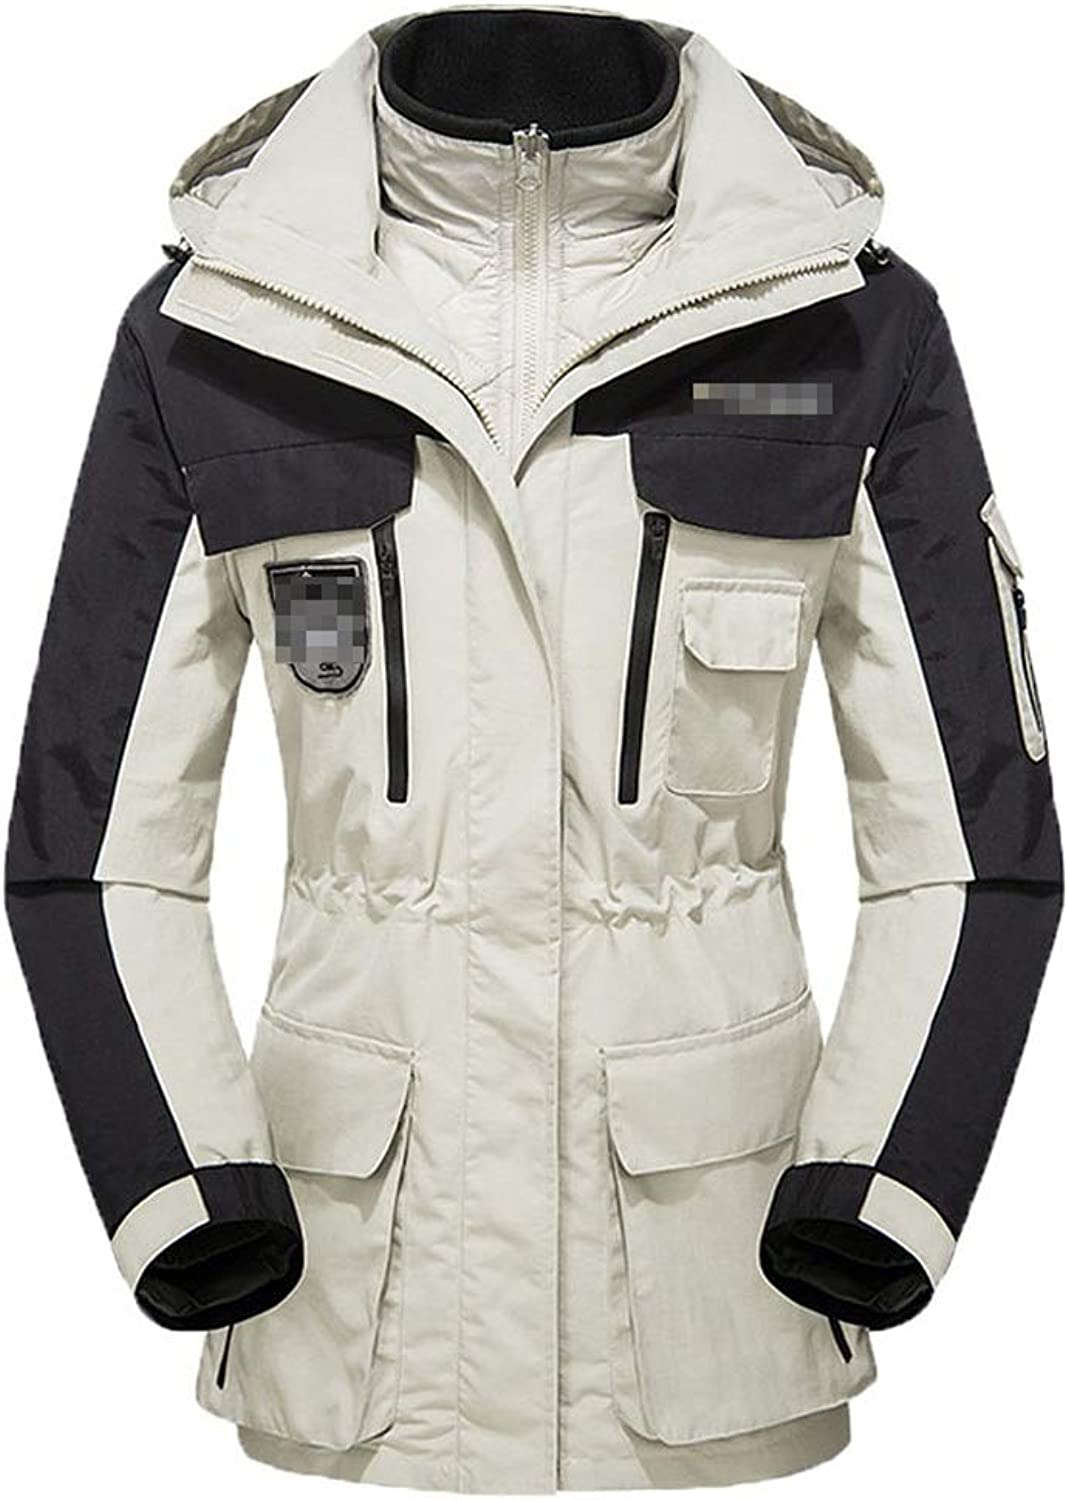 Outdoor Long Jacket Female 3in1 2Piece, Snowboard Coat,Comfortable and Warm